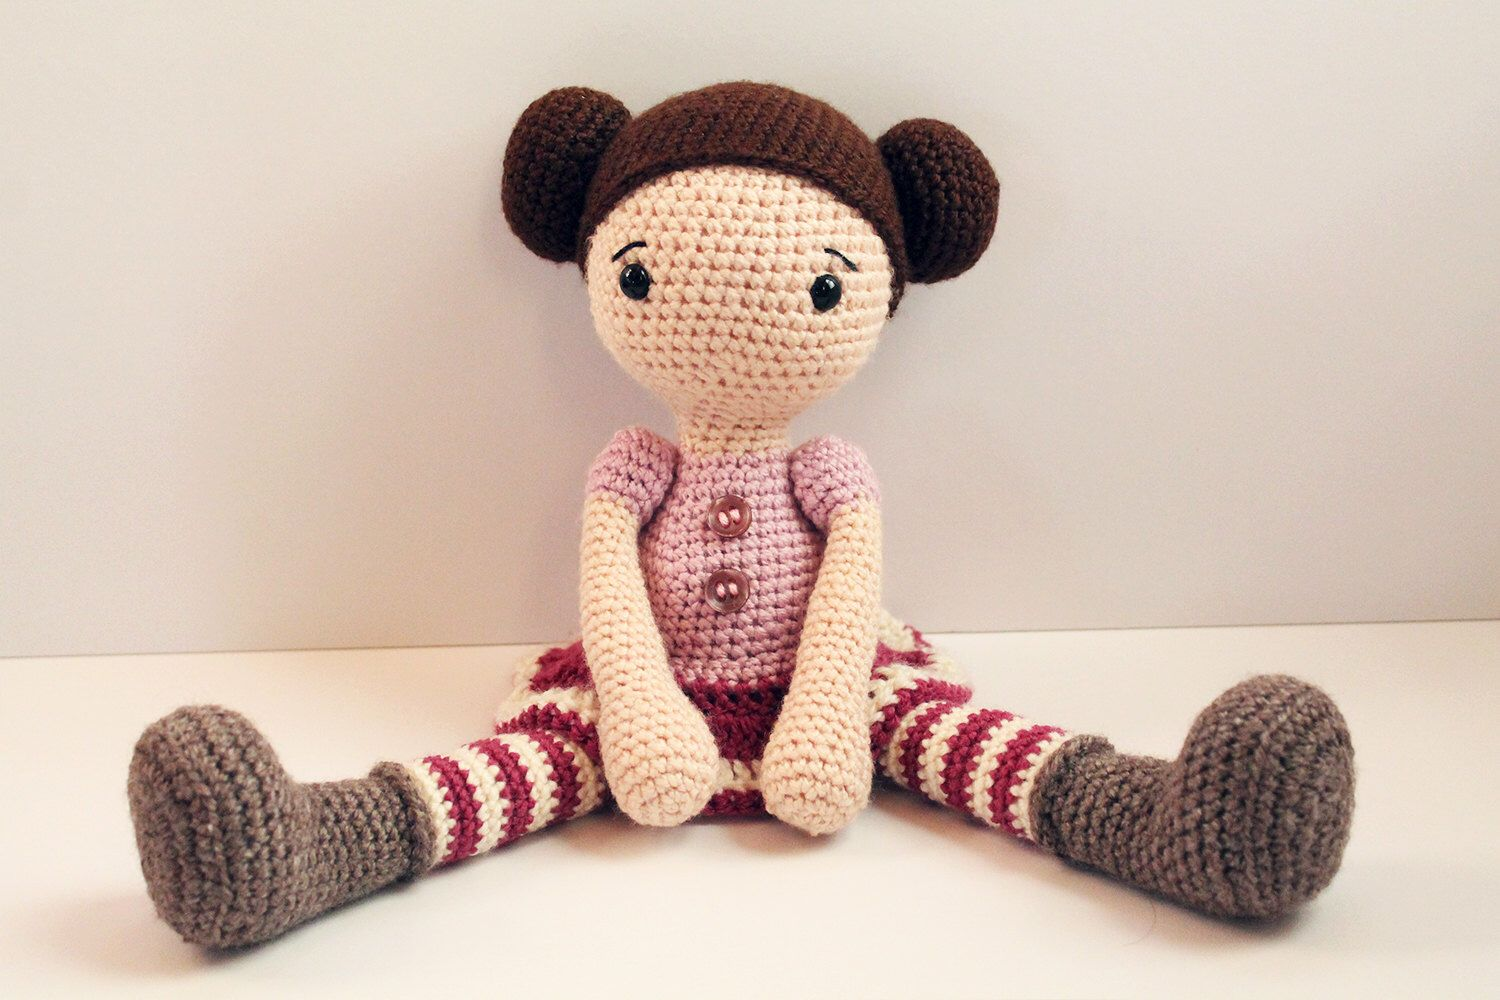 PATTERN : Doll - Crochet pattern - Amigurumi Doll pattern - Stuffed ...